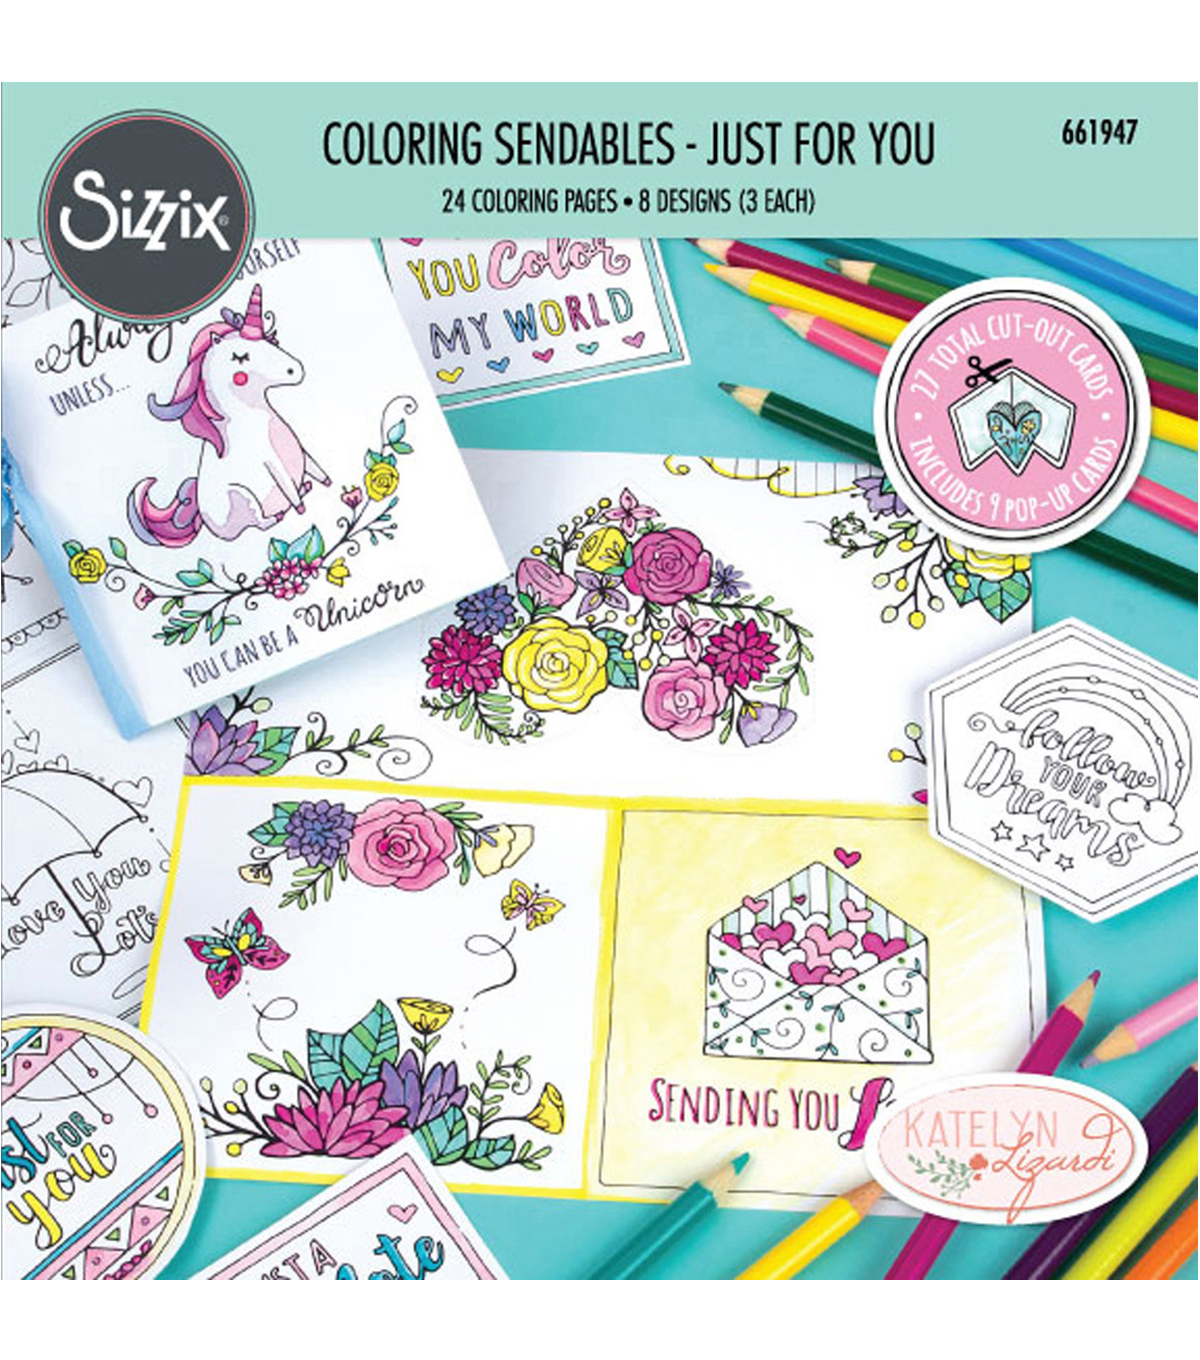 Sizzix® Katelyn Lizardi Coloring Sendables Book-Just For You